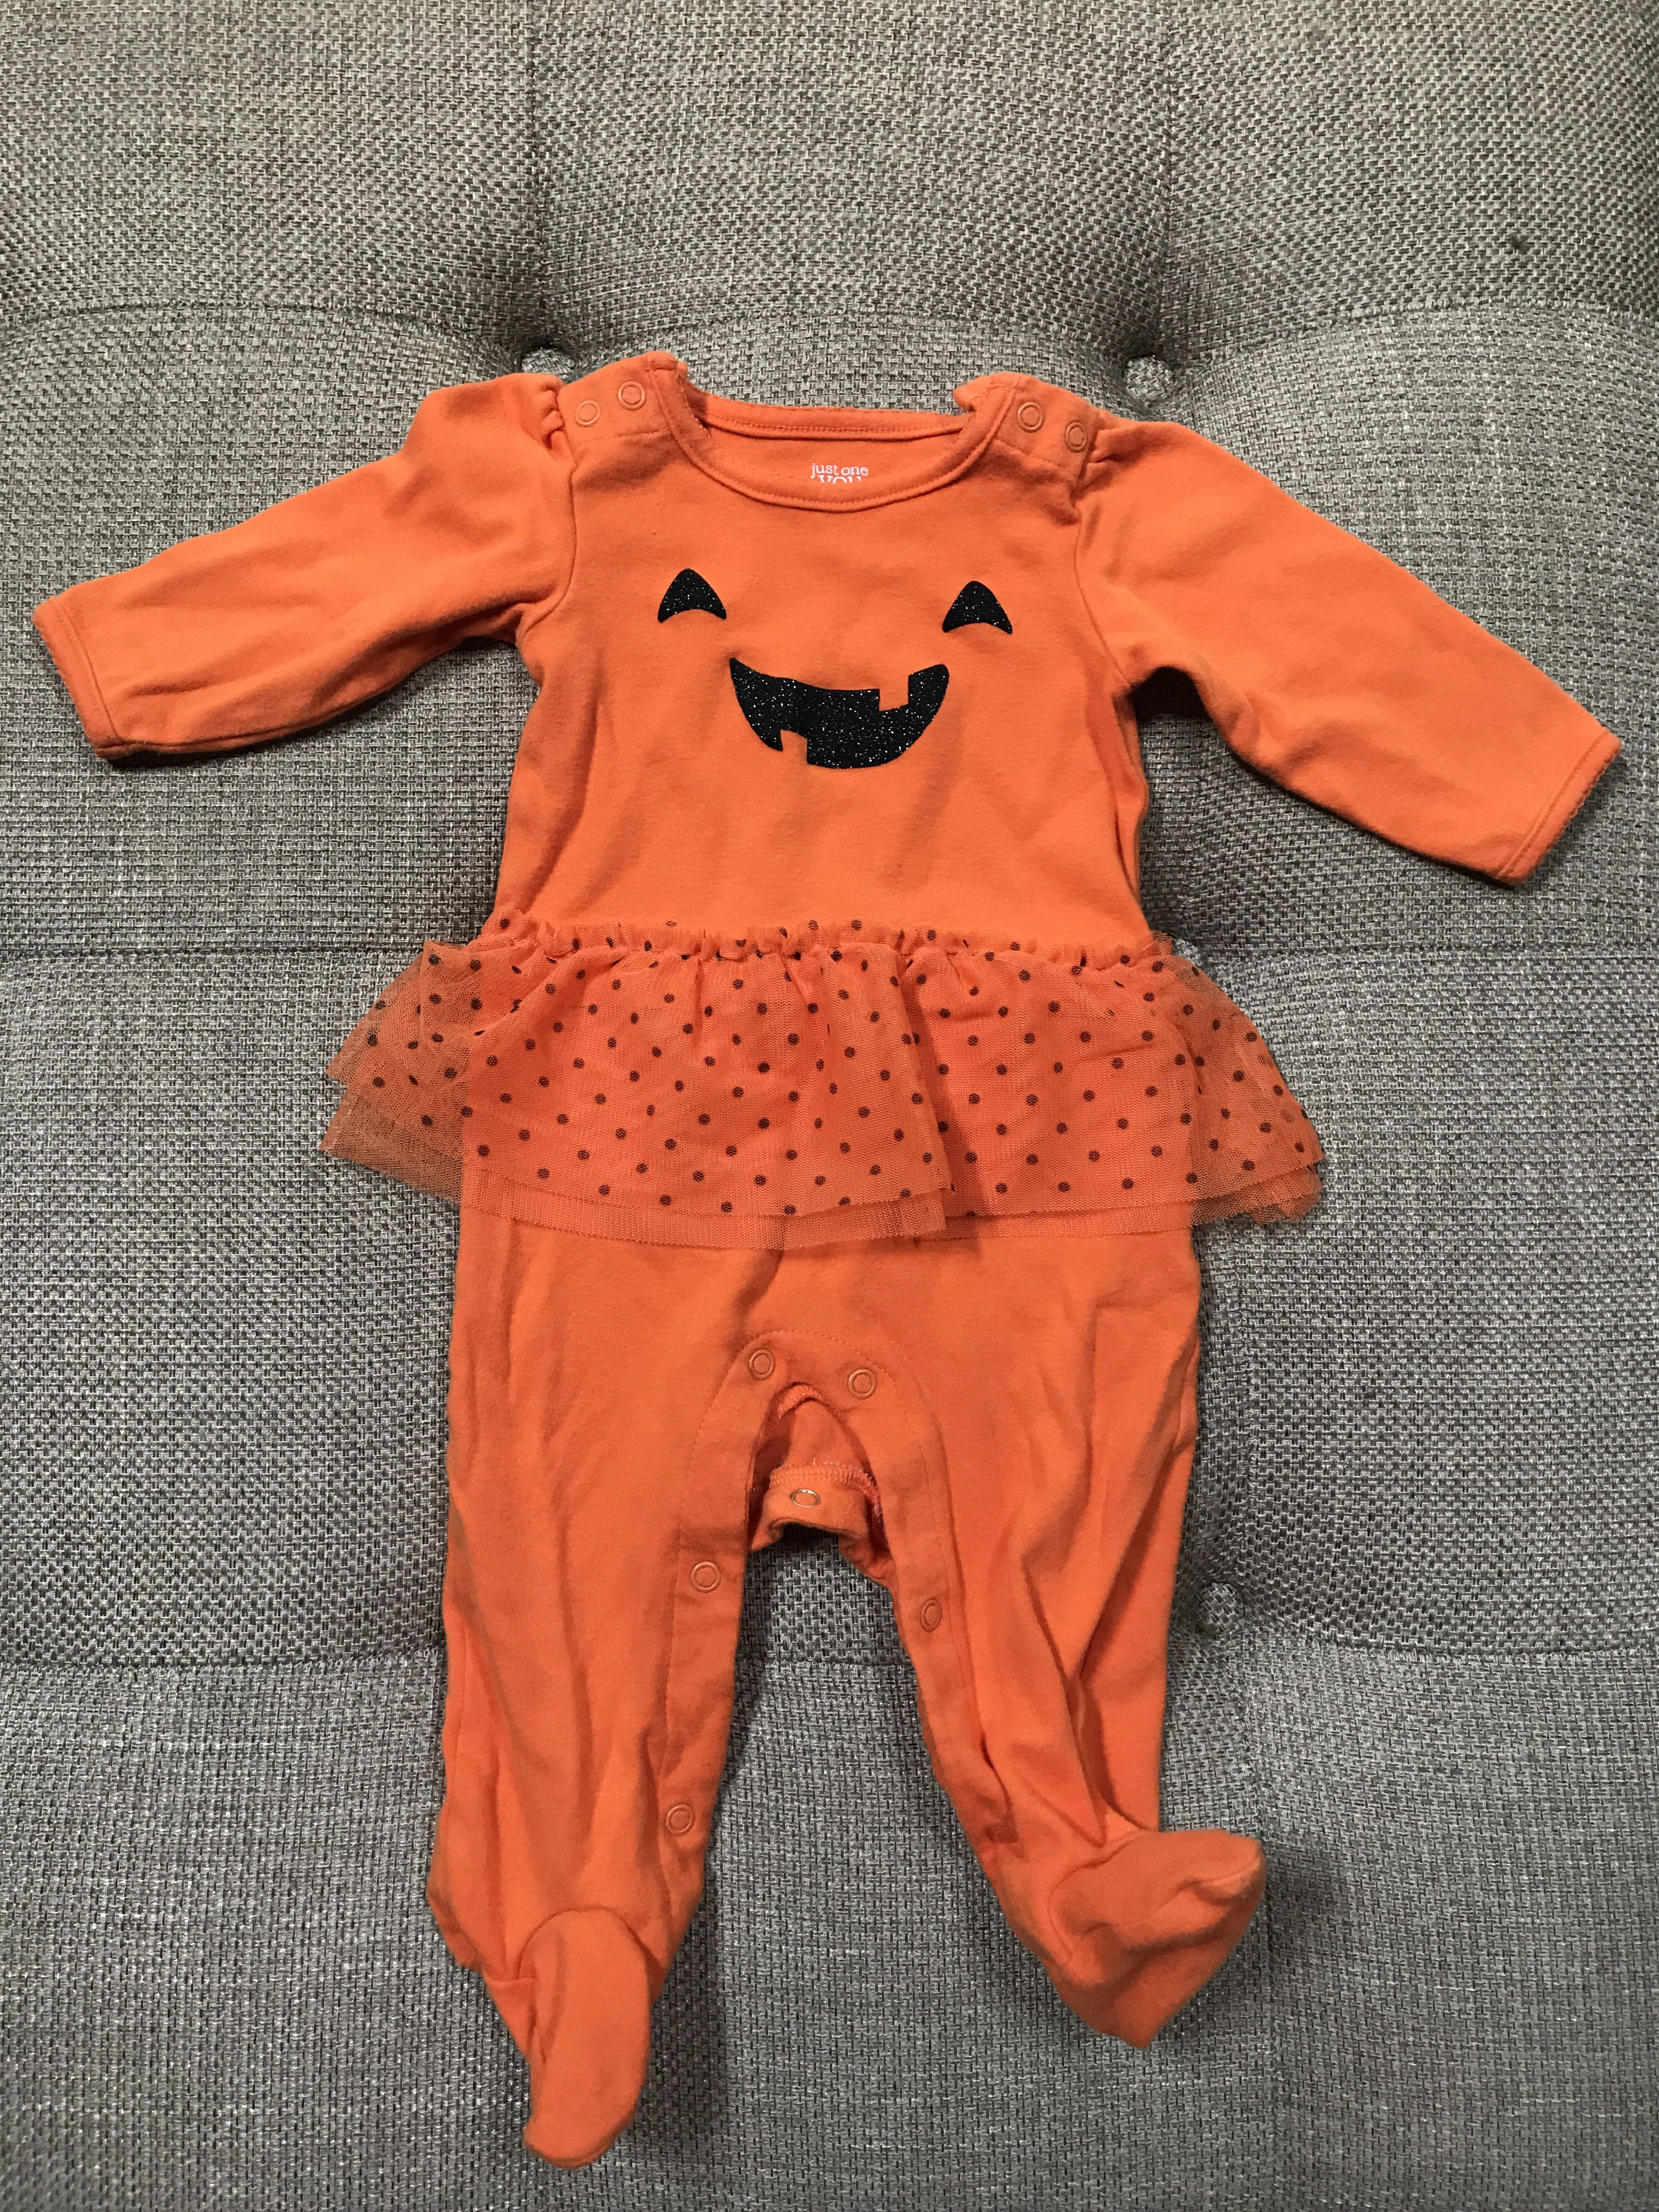 9 mo Halloween onsie. Germantown ppu. Xposted.